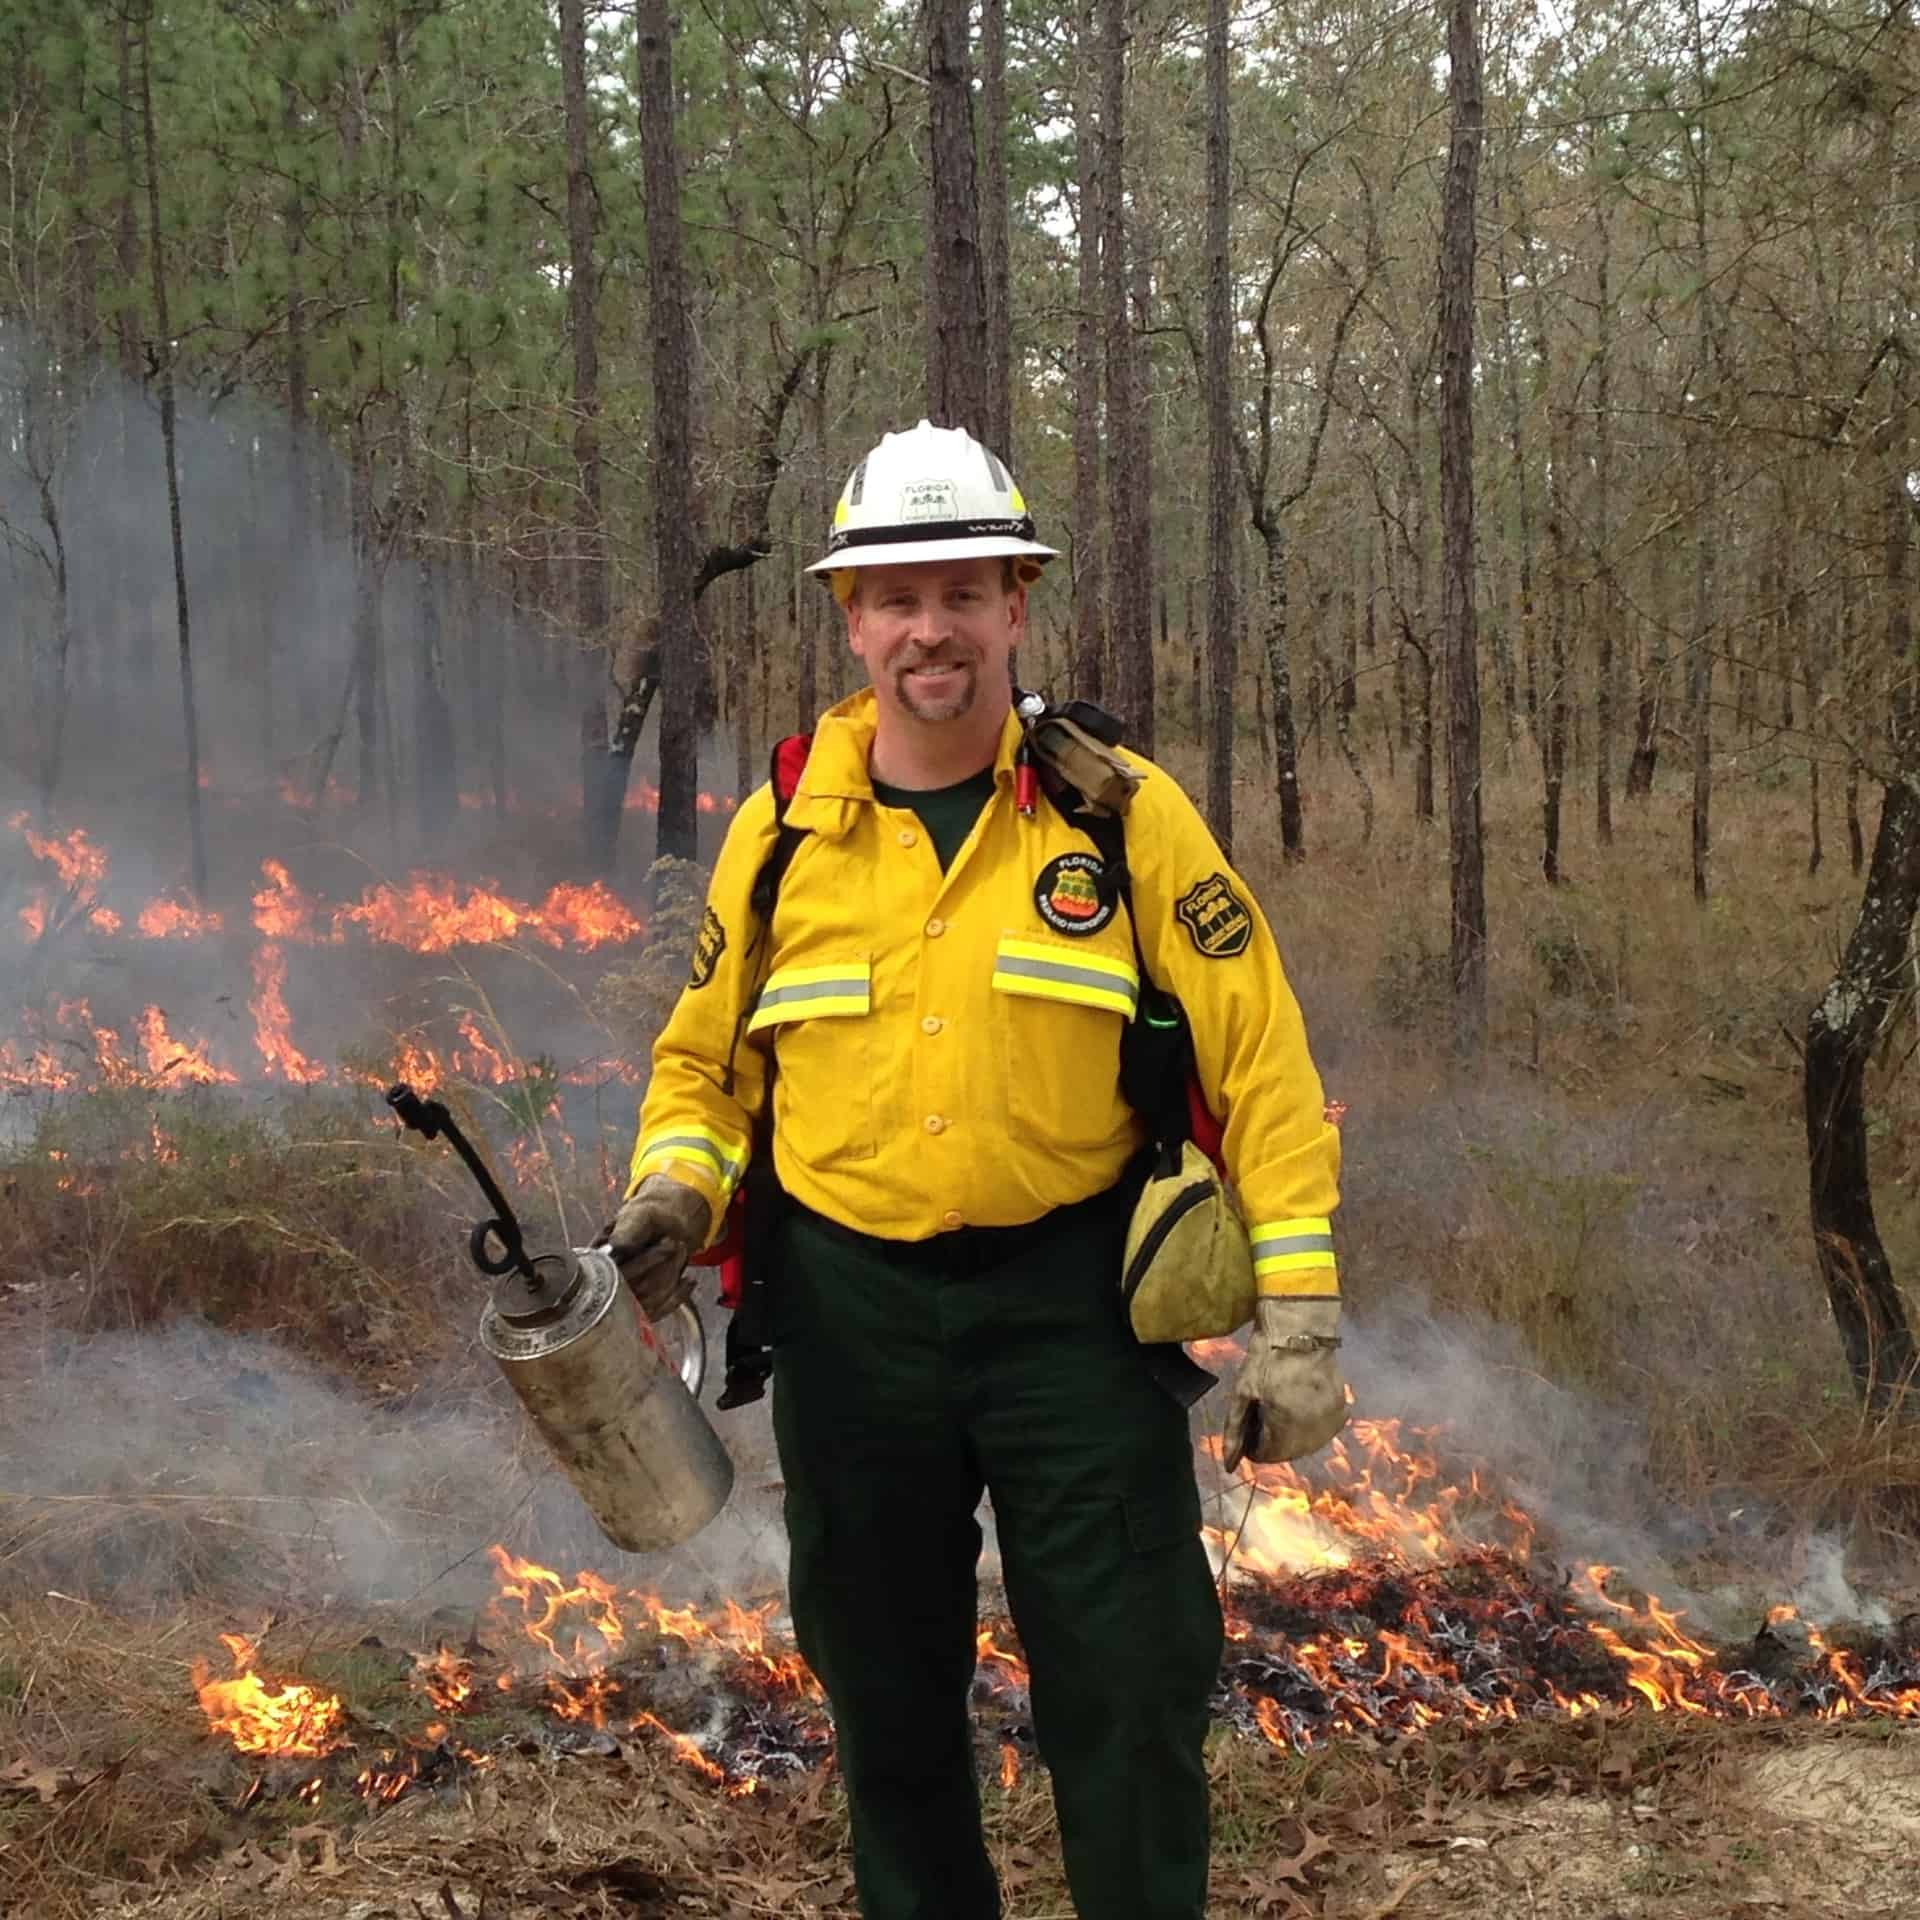 John Fish with a drip torch. John is the chief of the Florida Forest Service, and has represented the National Association of State Foresters (NASF) on the National Wildfire Coordinating Group's WUI Committee and currently on the national Fire Adapted Communities Coalition.